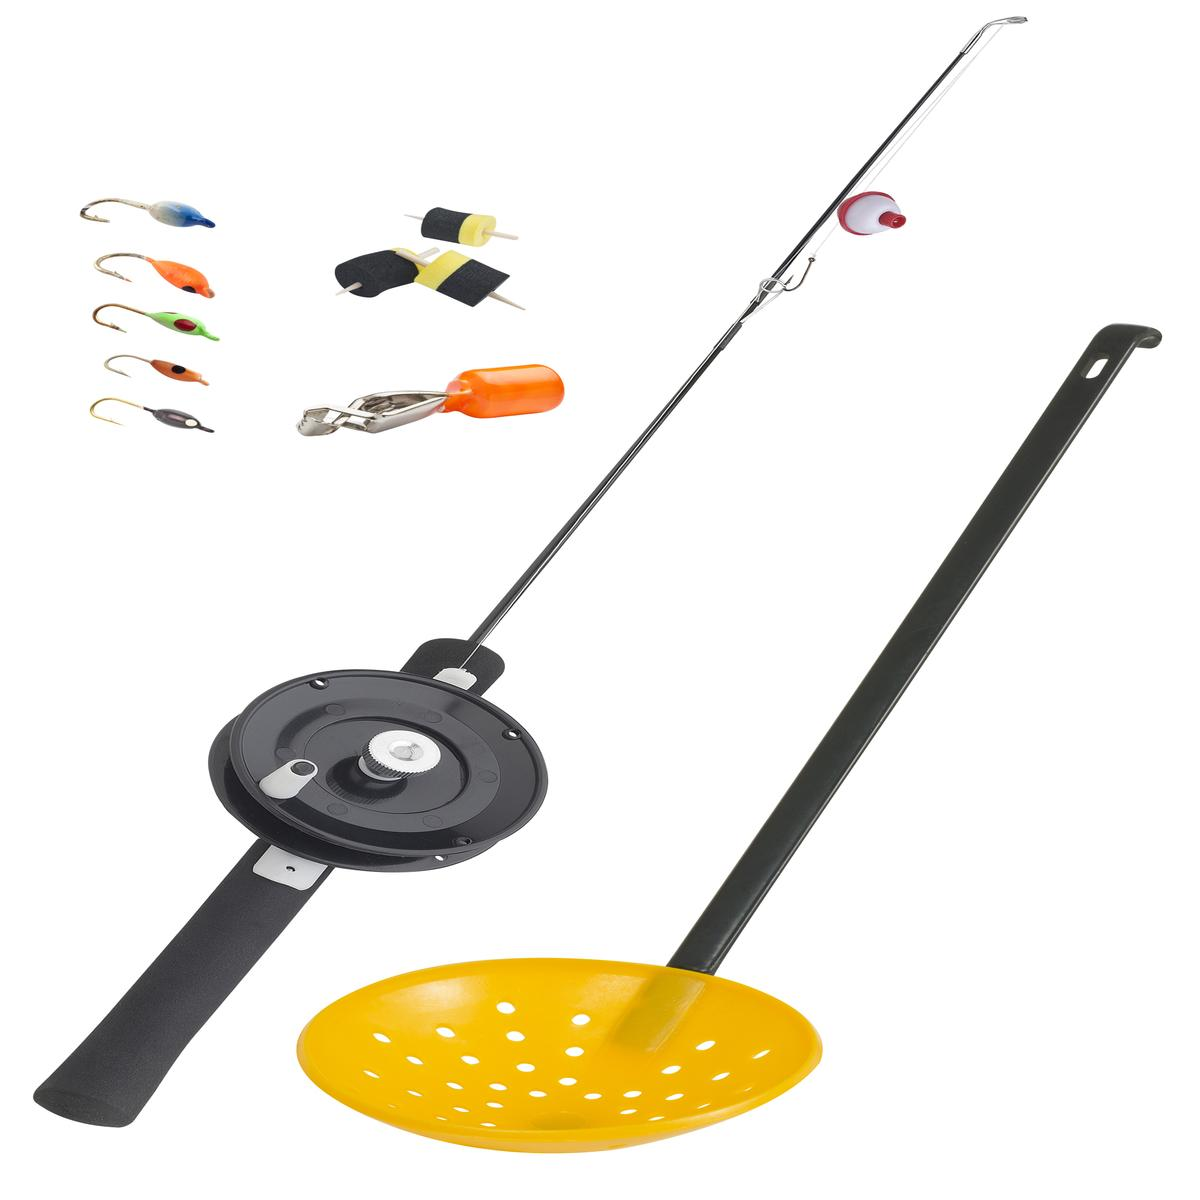 Celsius Complete Ice Fishing Kit by Generic